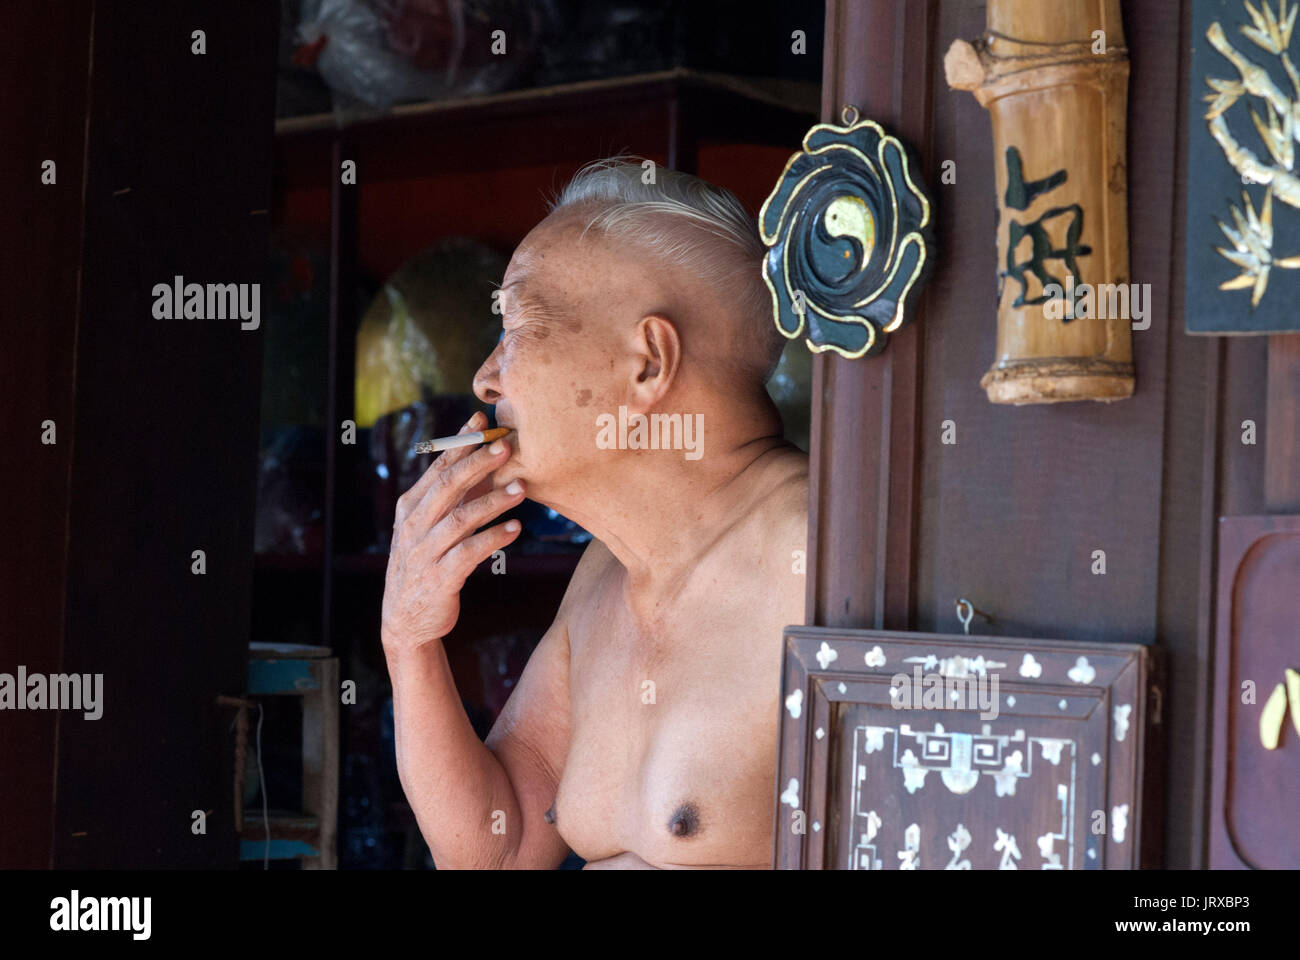 Man Smoke A Cigaret Naket Outside The House Hoi An Vietnam Stock